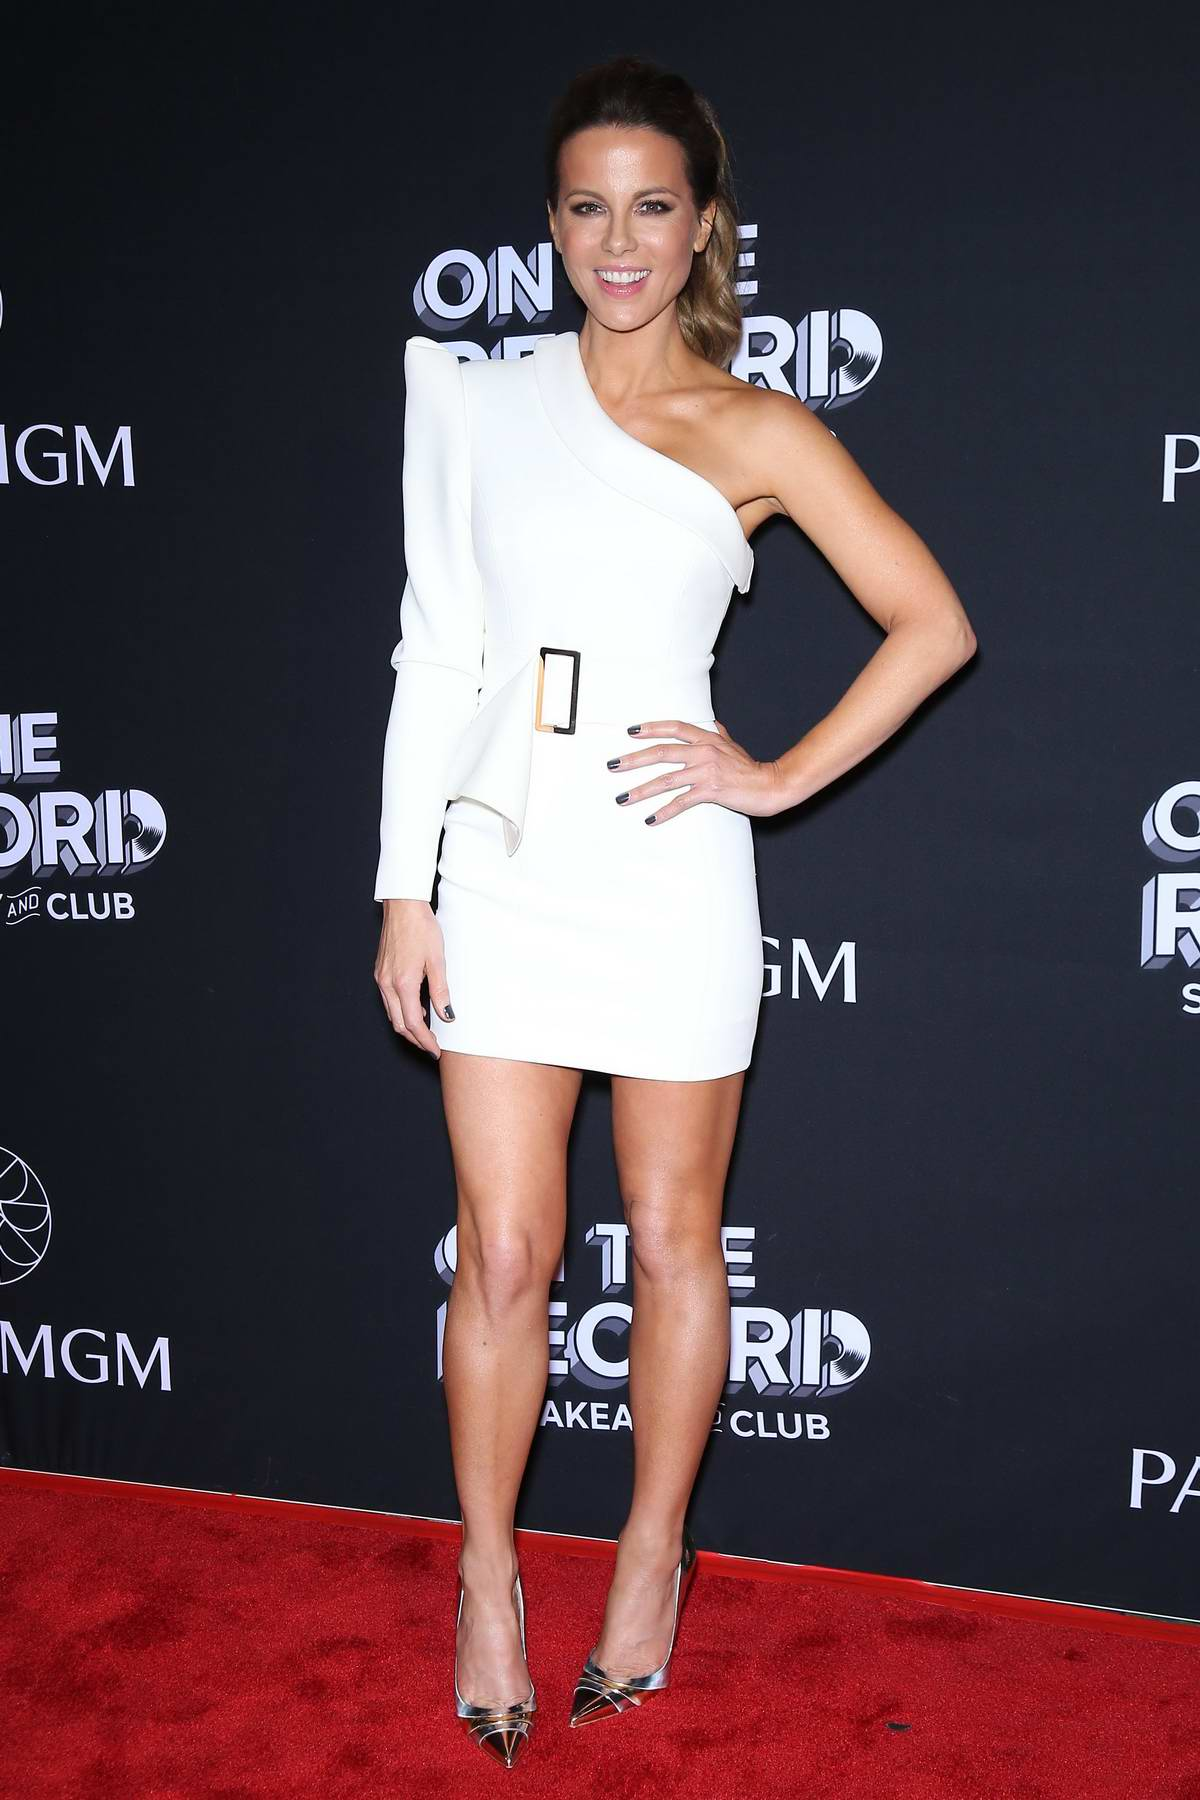 Kate Beckinsale attends On The Record Grand Opening Red Carpet at Park MGM in Las Vegas, Nevada